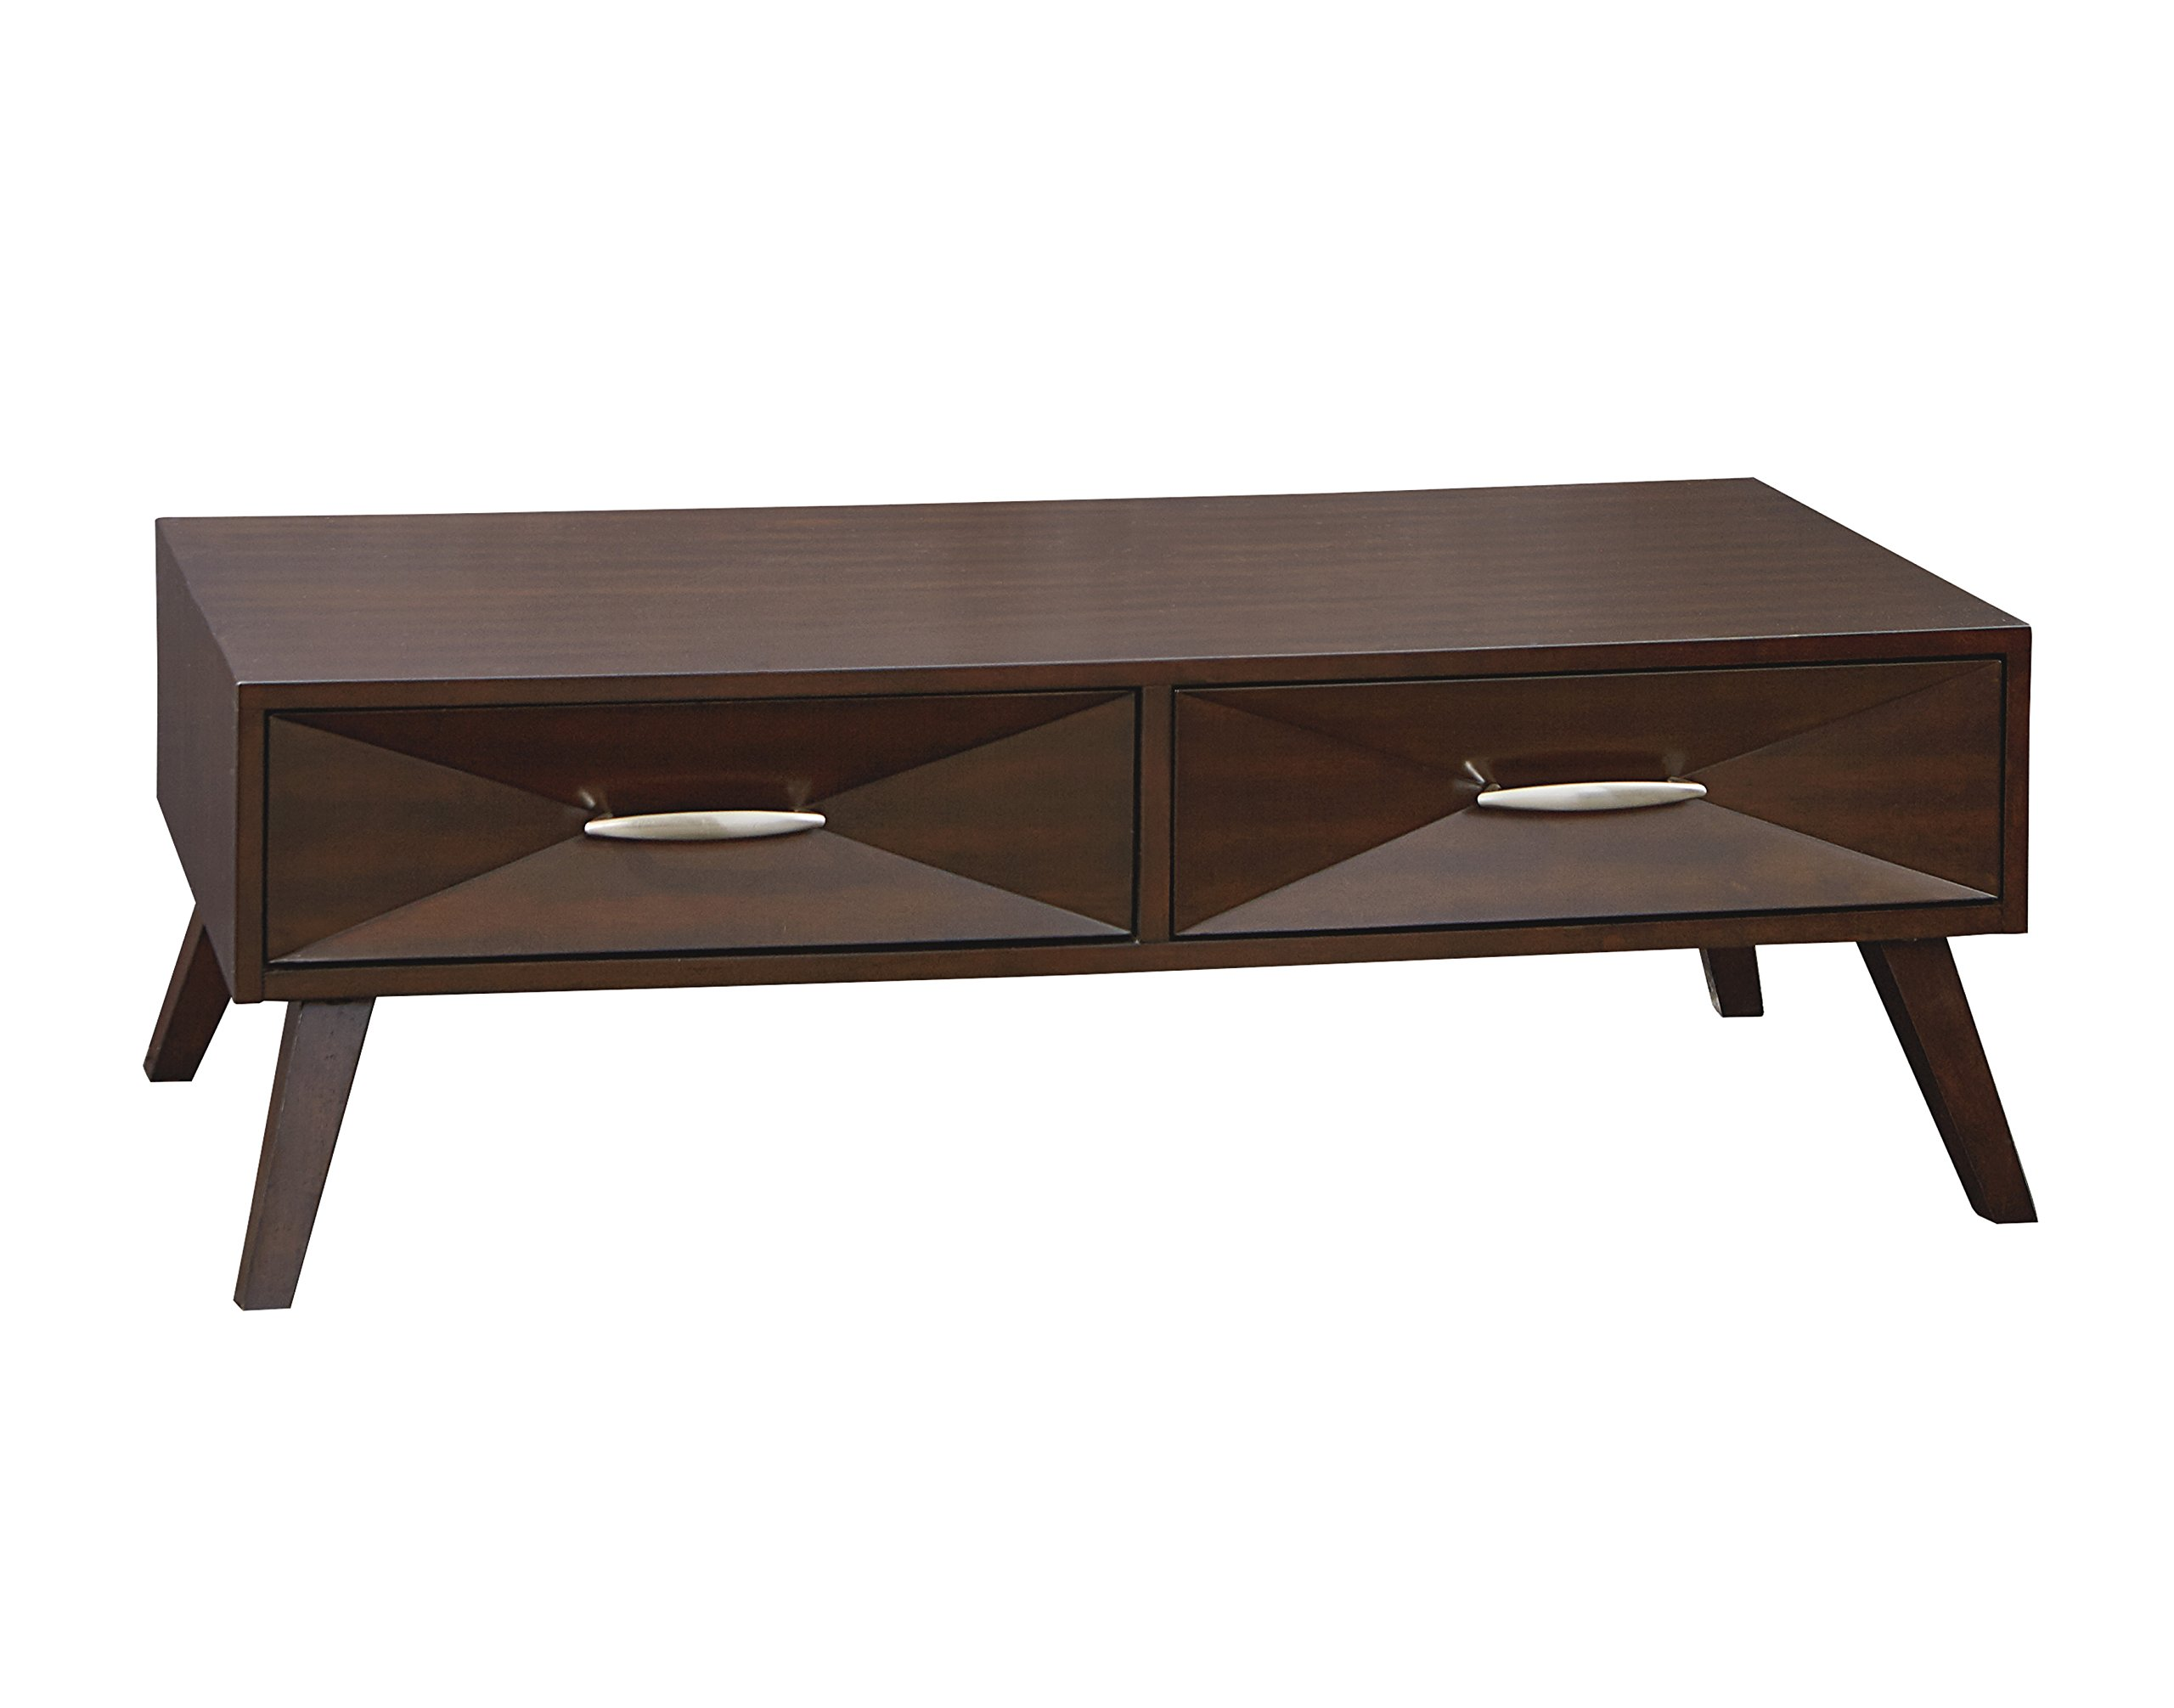 Standard Furniture 20061 Forsythe Coffee Table, 48'' W x 26'' D x 16'' H, Brown by Standard Furniture